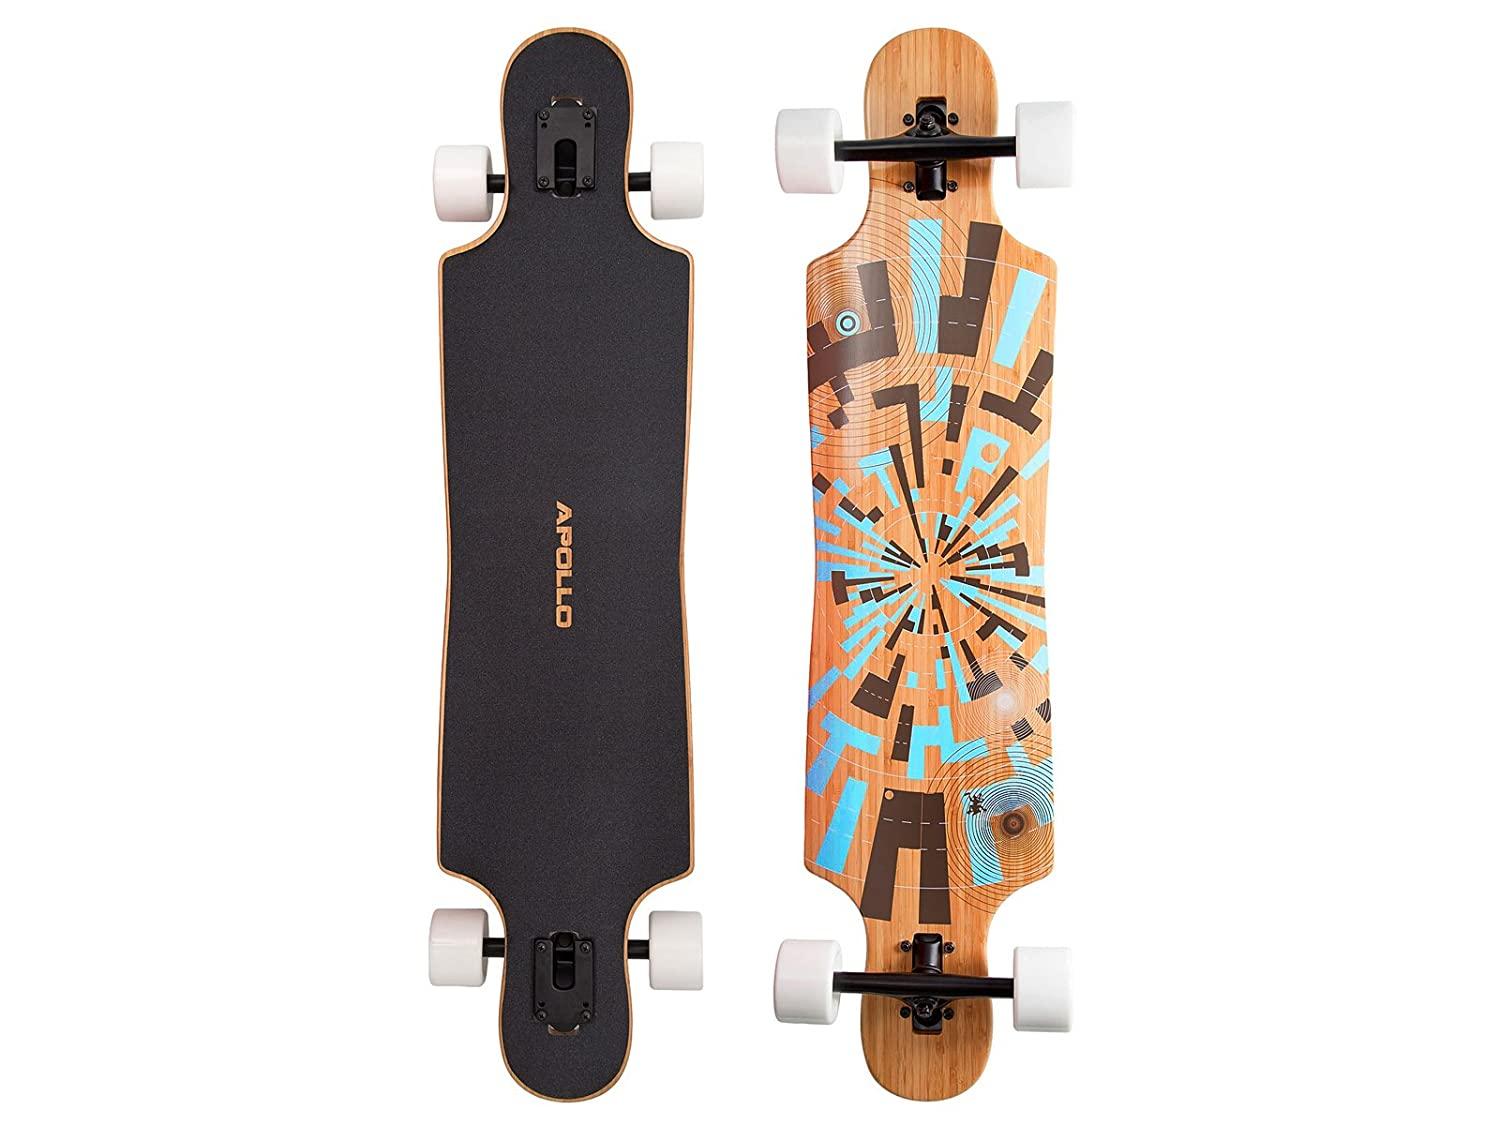 Apollo Longboard Twin-Tip Drop-Thru, Soul Bamboo, Flex 2, 101,8 cm x 24 cm: Amazon.es: Deportes y aire libre